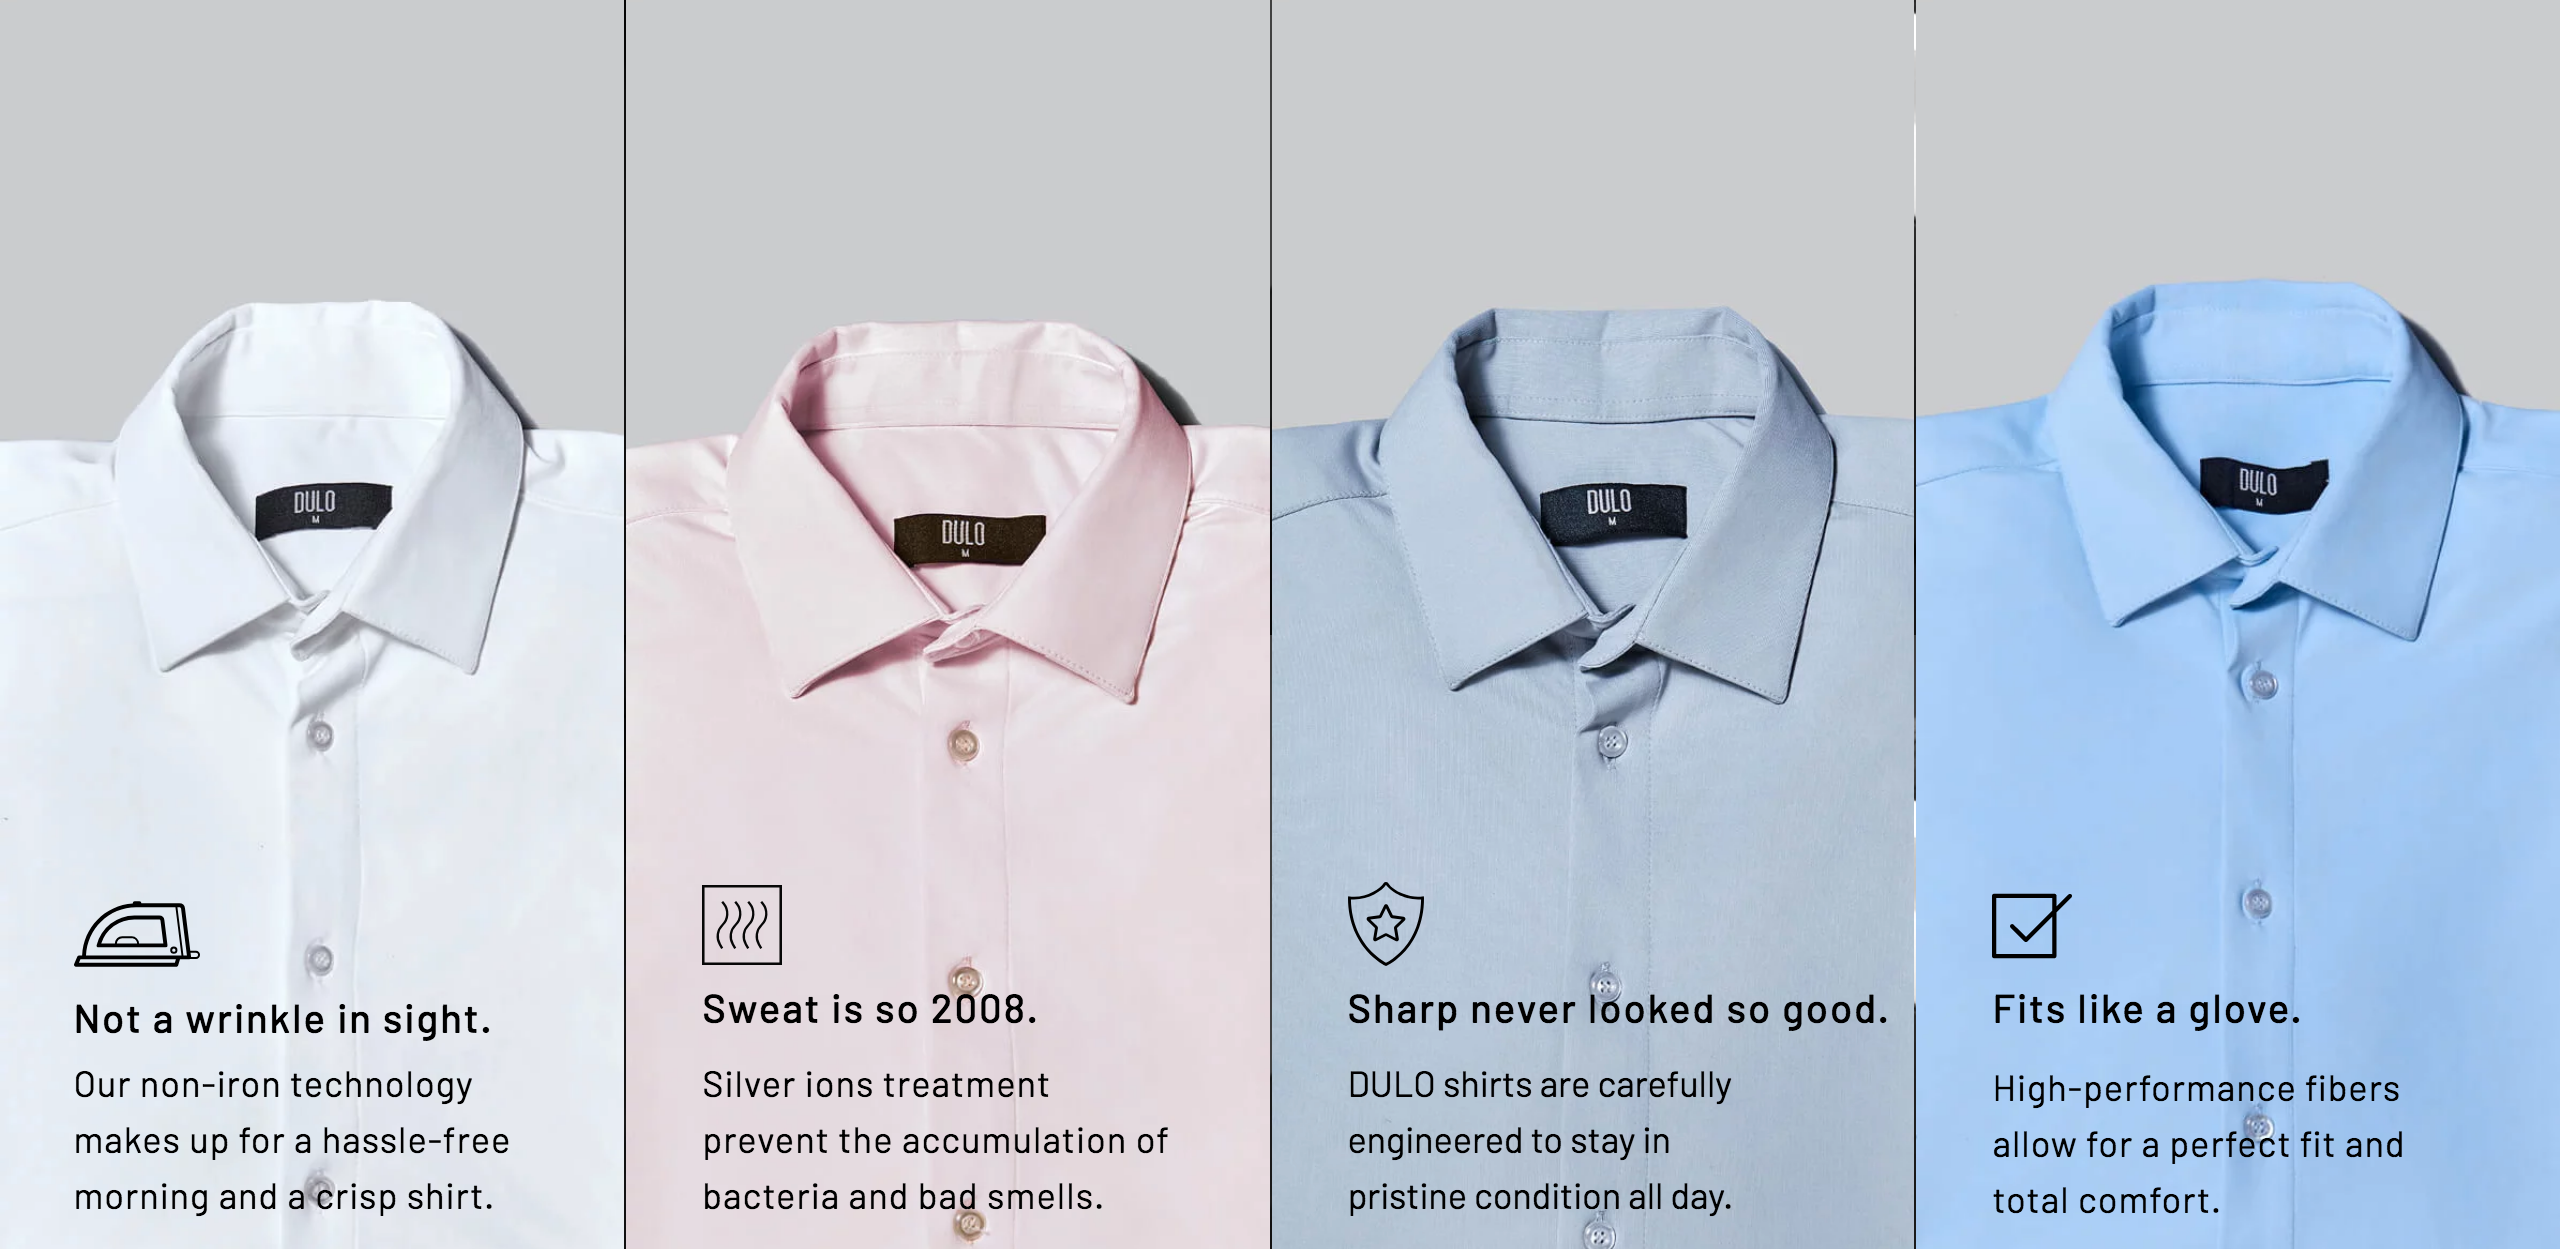 DULO Performance Dress Shirt Properties